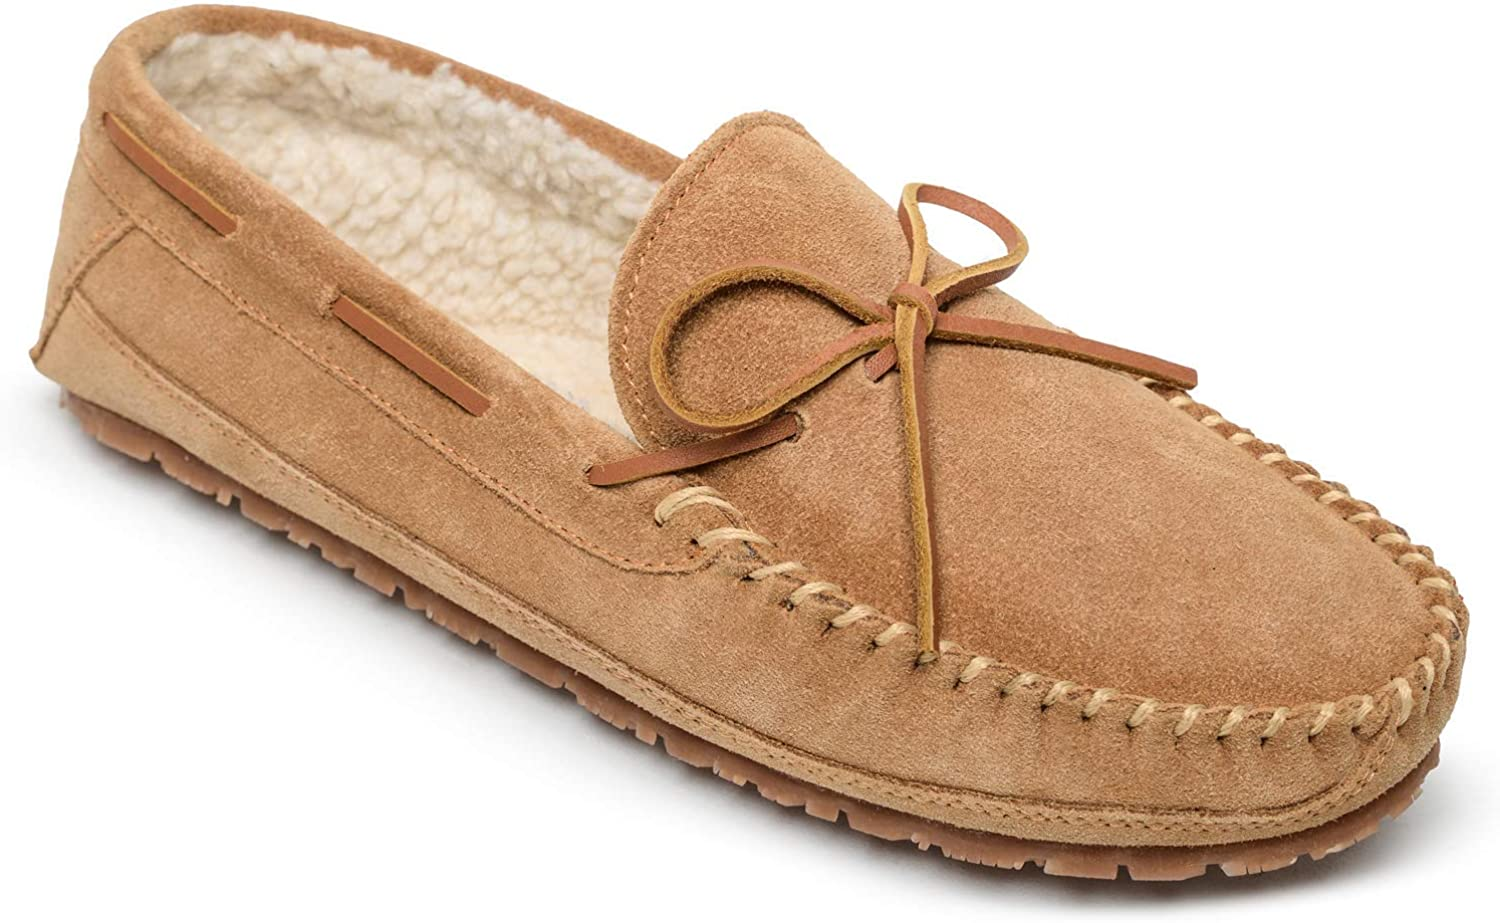 Sperry Men's Trapper Moccasin with Lining Slippers Max 67% OFF San Antonio Mall Berber